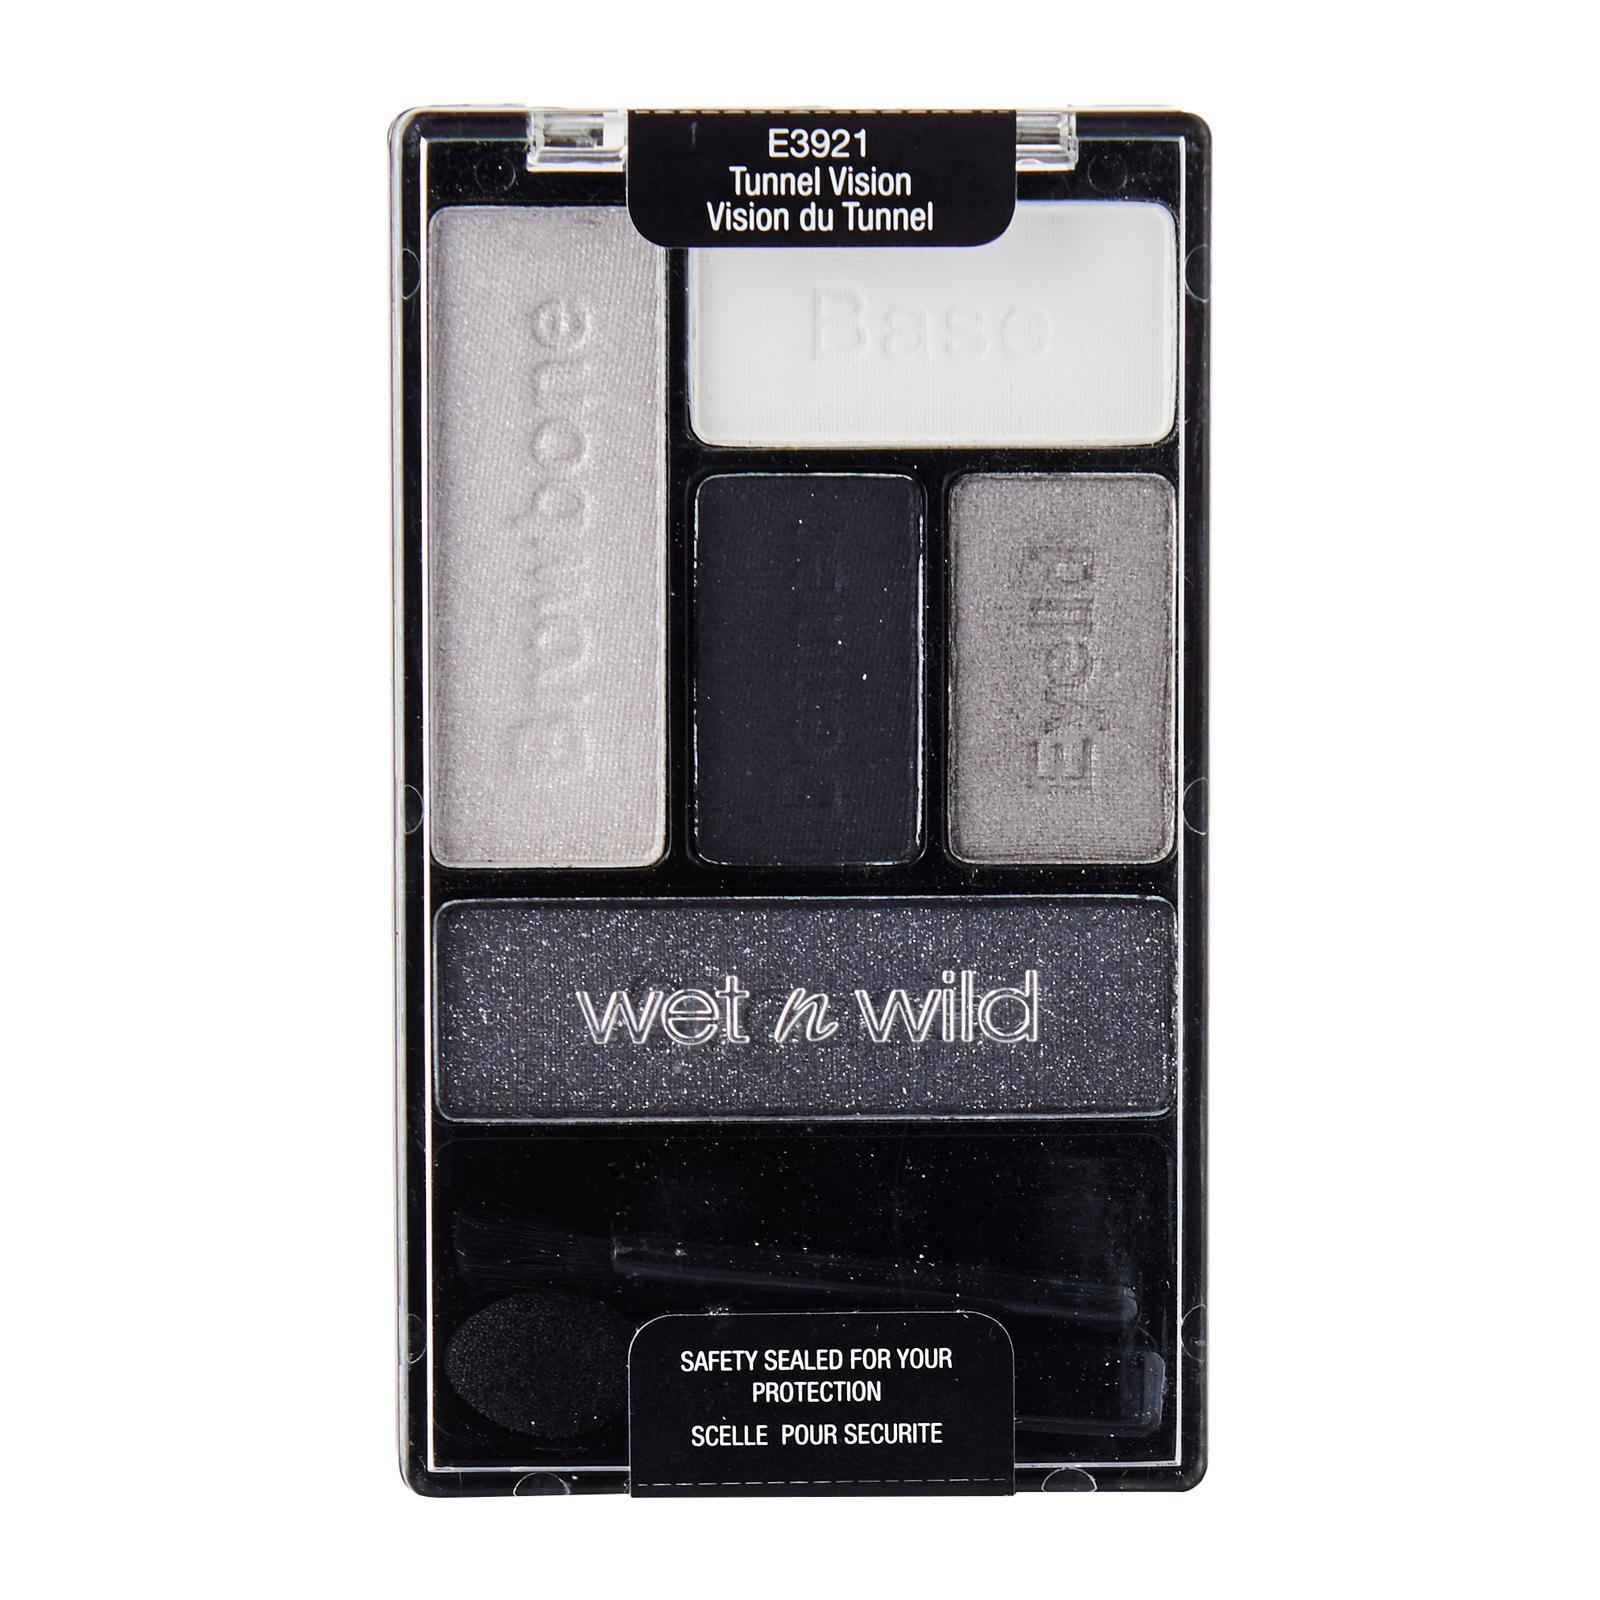 Wet n Wild Color Icon Eye Shadow Palette Tunnel Vision E3921